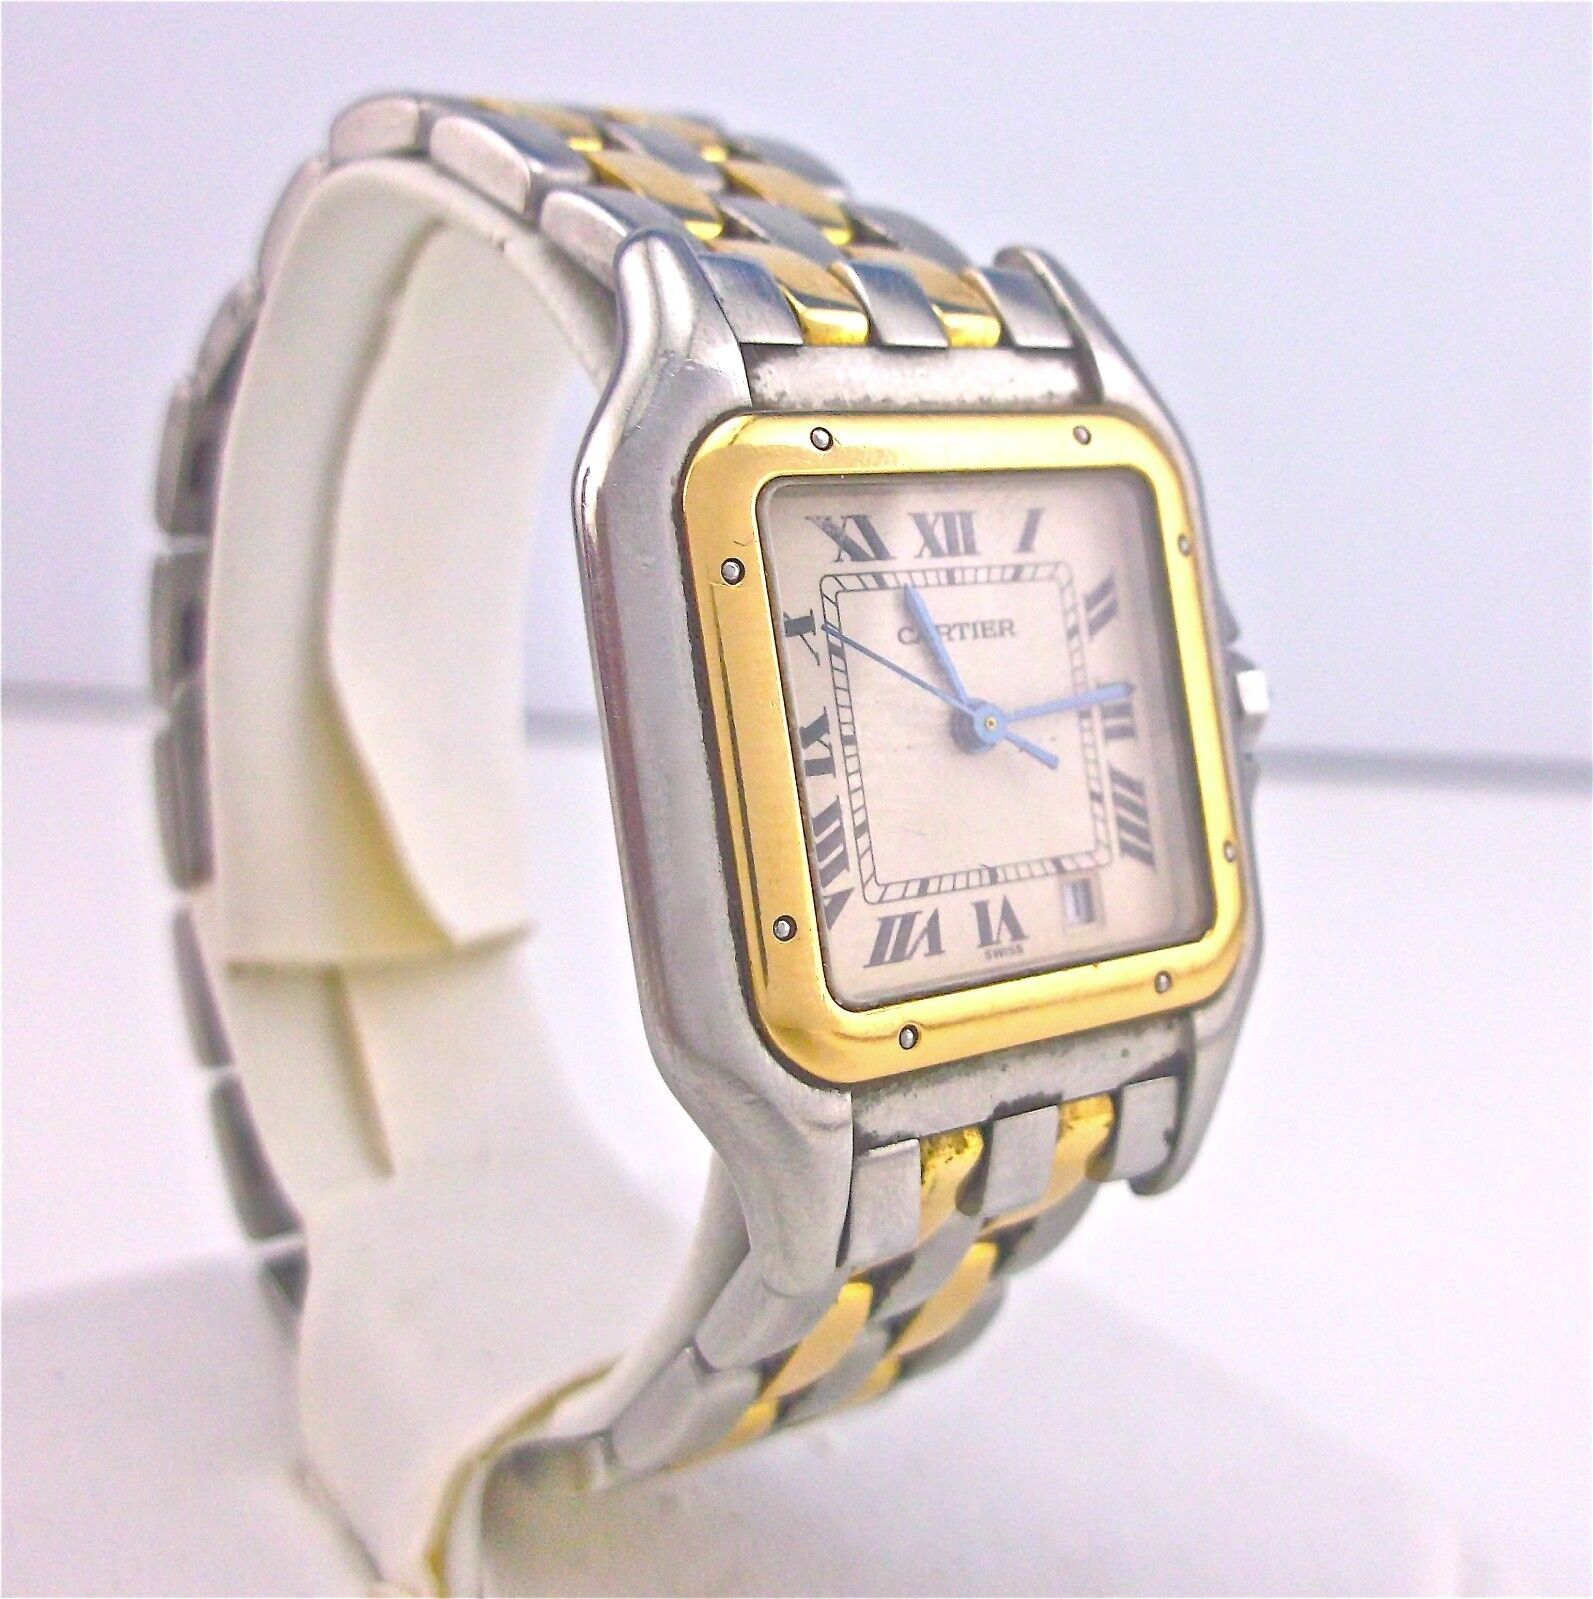 $1200.00 - Cartier - Panthere - Unisex Watch - 18K Gold & SS - 83083242 ~#3003